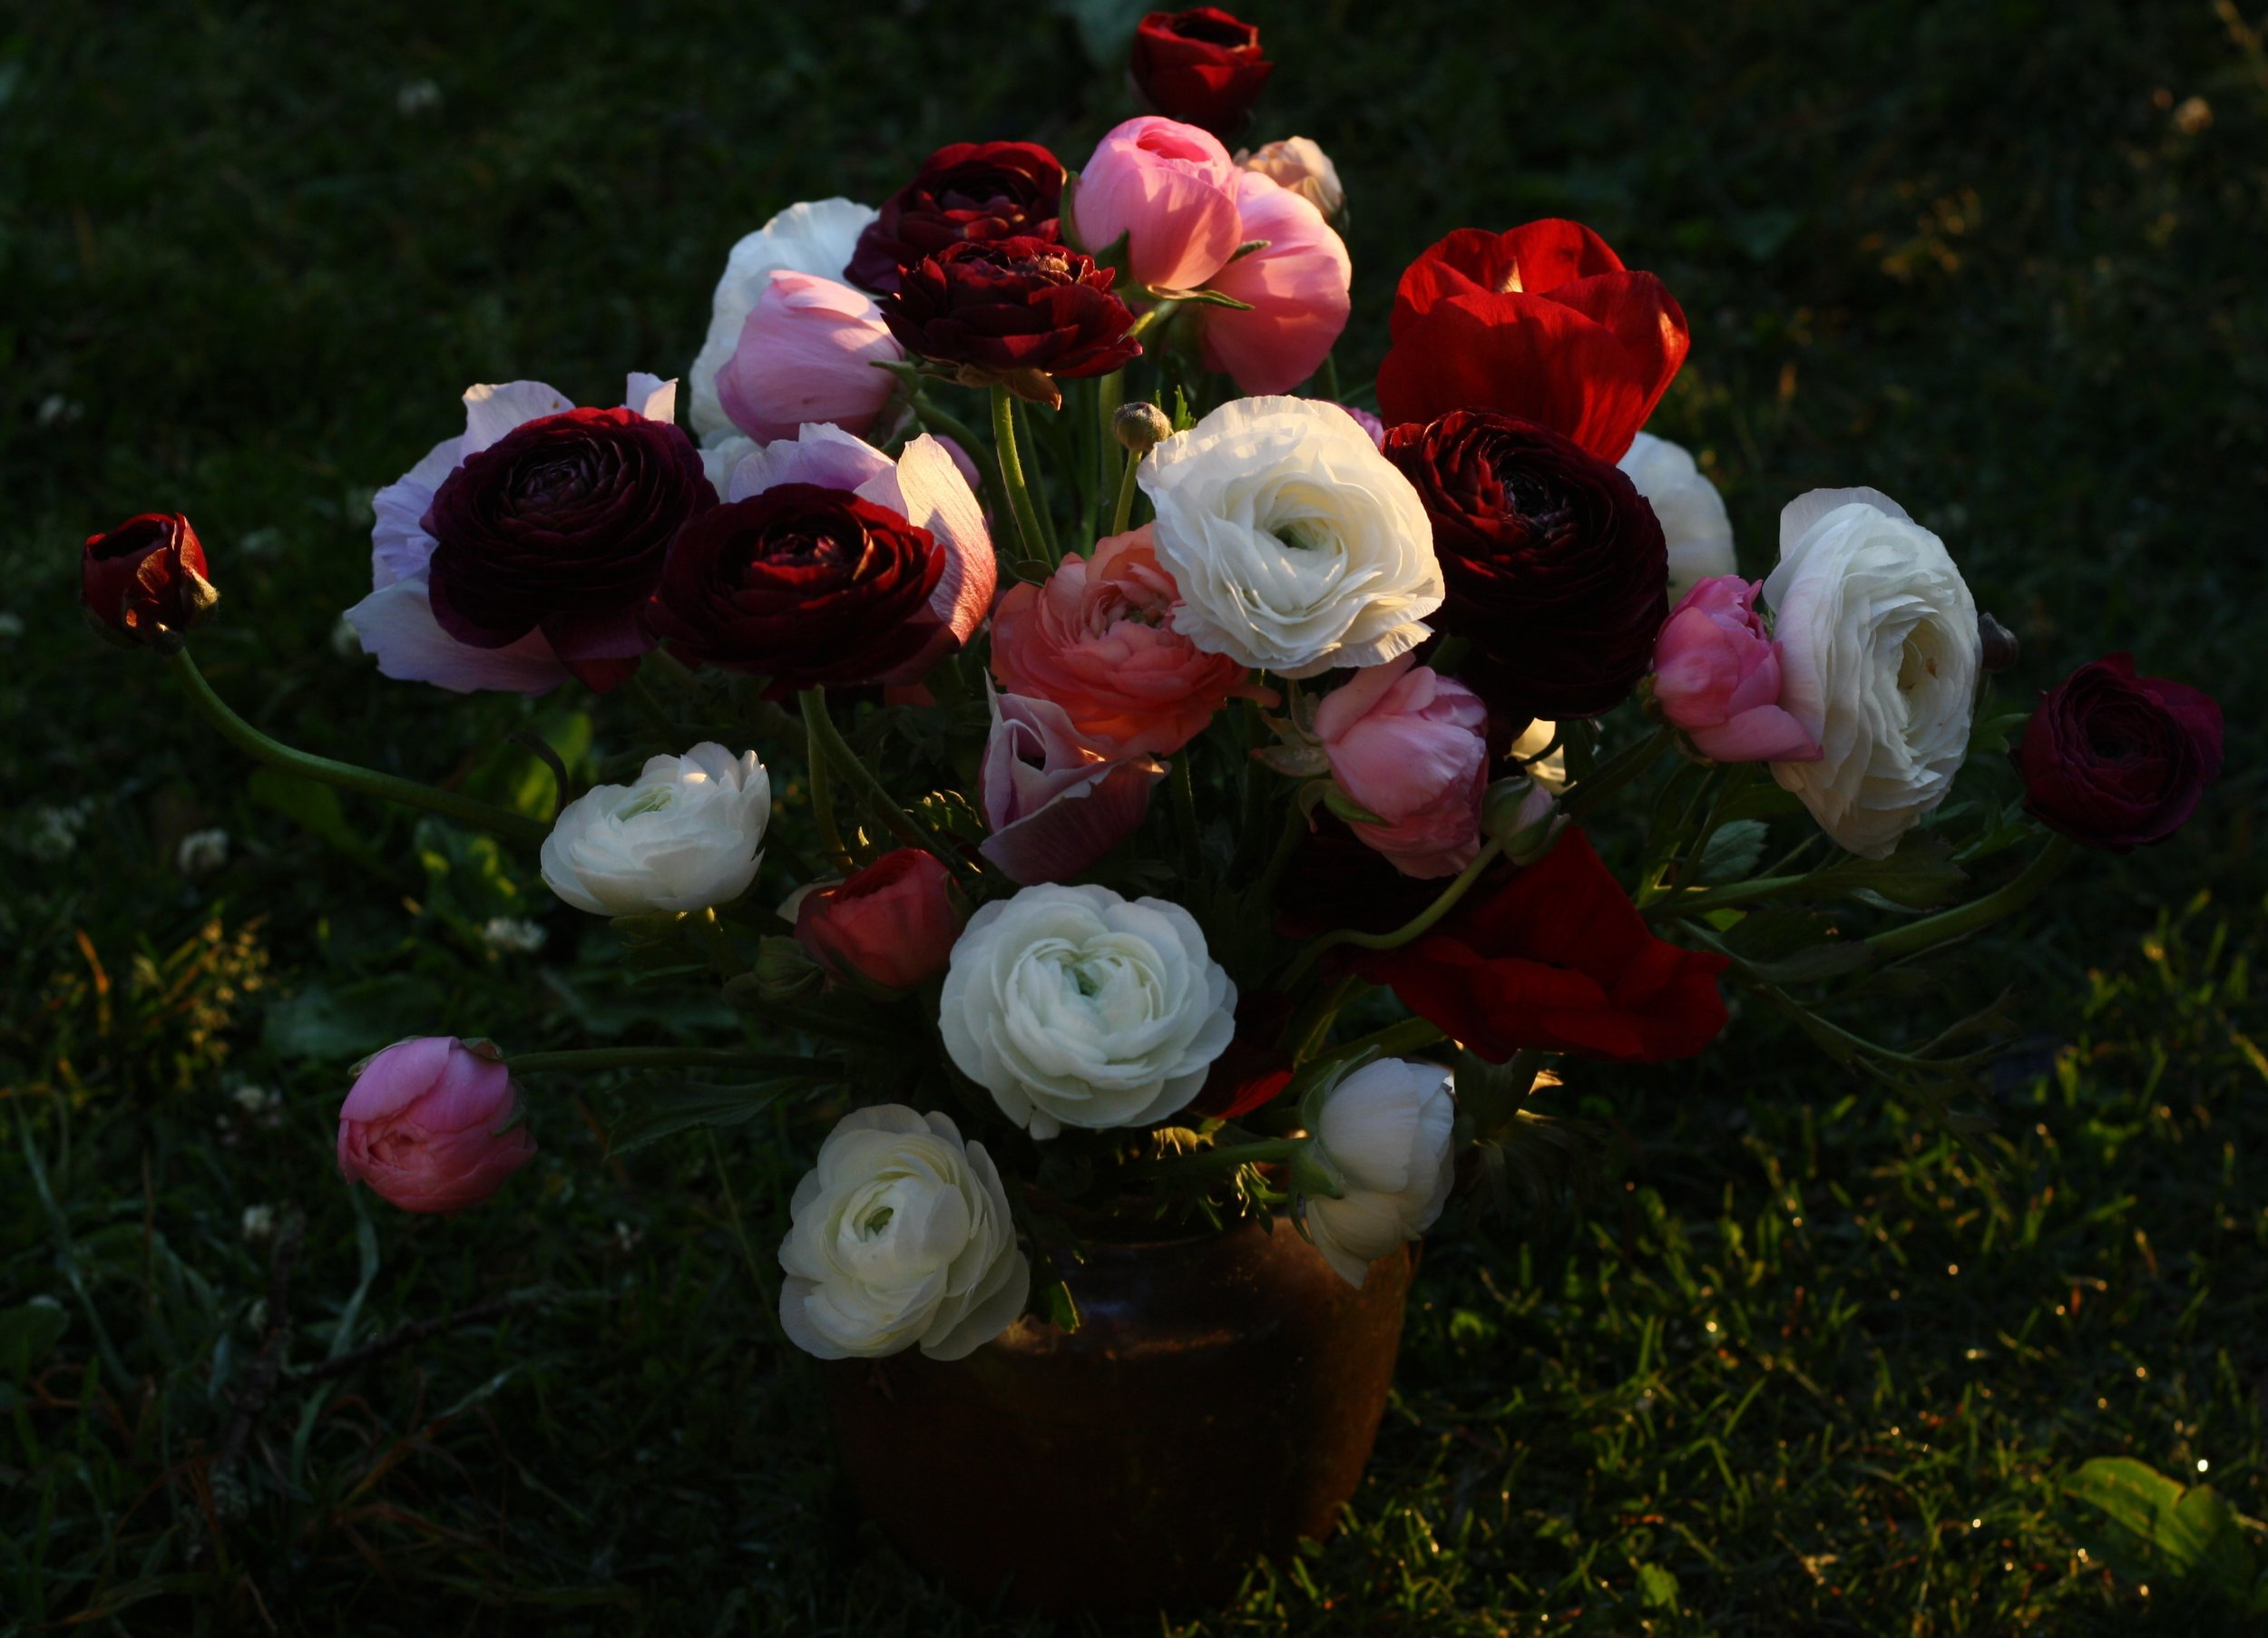 biancheri ranunculus and anemones grown in Nova Scotia by Hedgerow Flower Company.